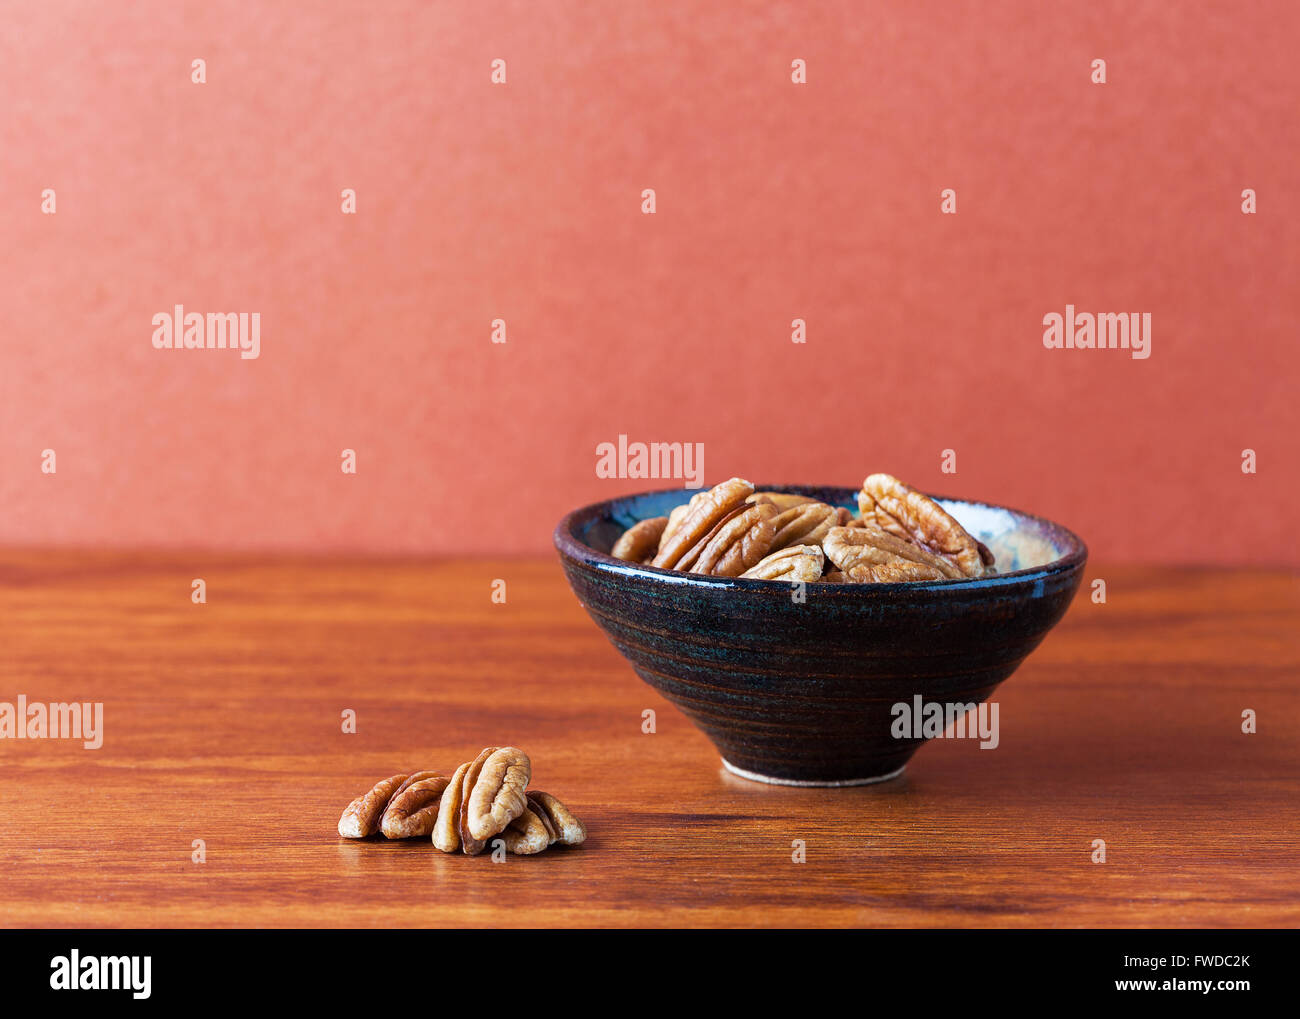 Pecans on wooden table and in ceramic bowl with brown background. Copy space, shallow depth of field - Stock Image